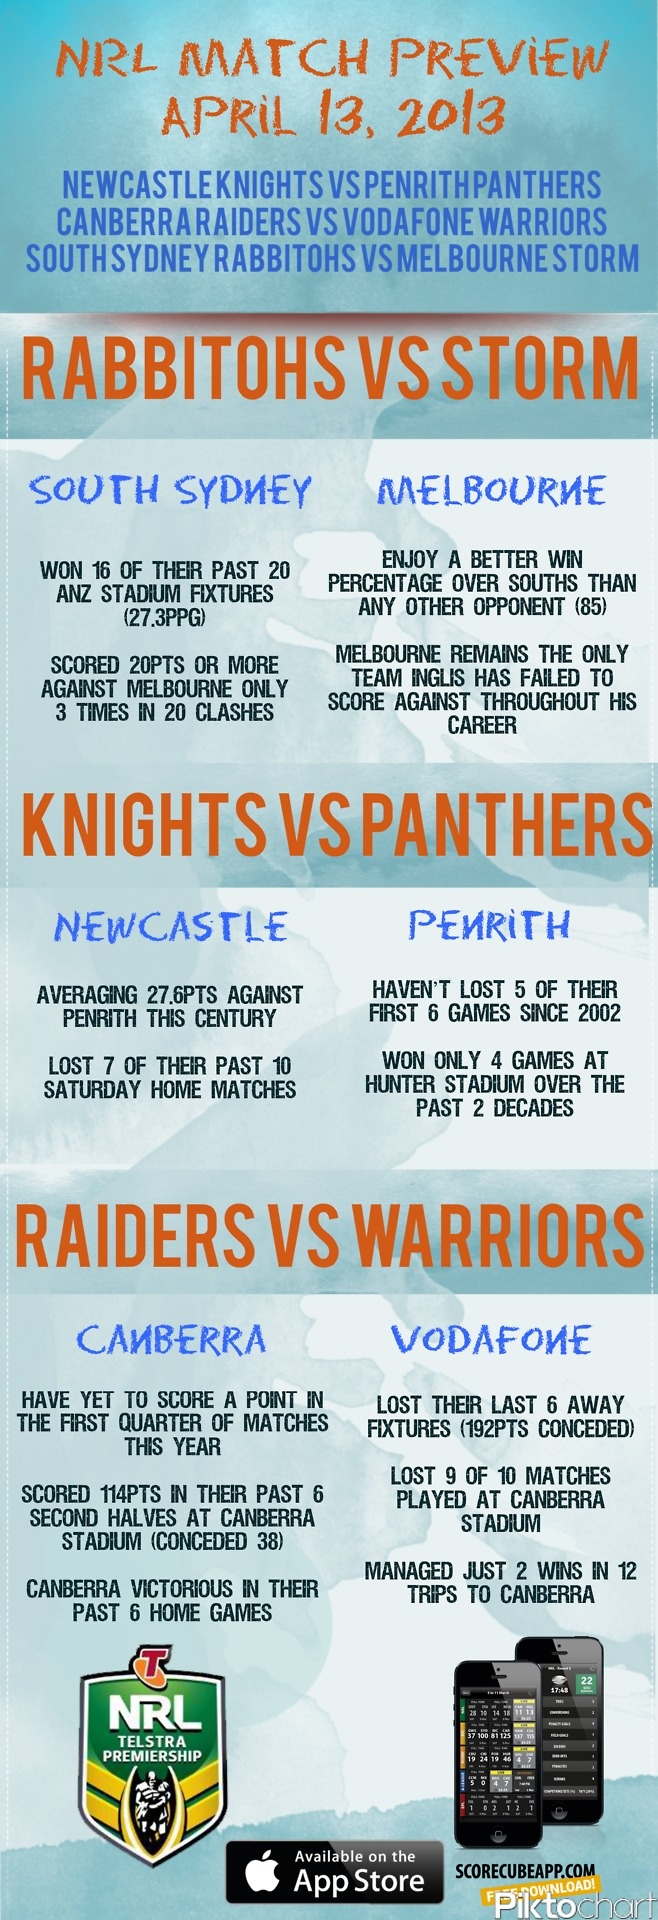 Match preview of the NRL - National Rugby League games today! We've got South Sydney Rabbitohs vs Melbourne Storm, Newcastle Knightsvs Penrith Panthers, Canberra Raiders vs Vodafone Warriors. Check out how they stack-up against each other.Download the ScoreCube app to be updated on the latest scores, stats and local schedule of your favorite NRL team. http://scorecubeapp.com/  Download the app here:  itunes download link  Follow us on Twitter: @scorecubeapp  We are also on Facebook…